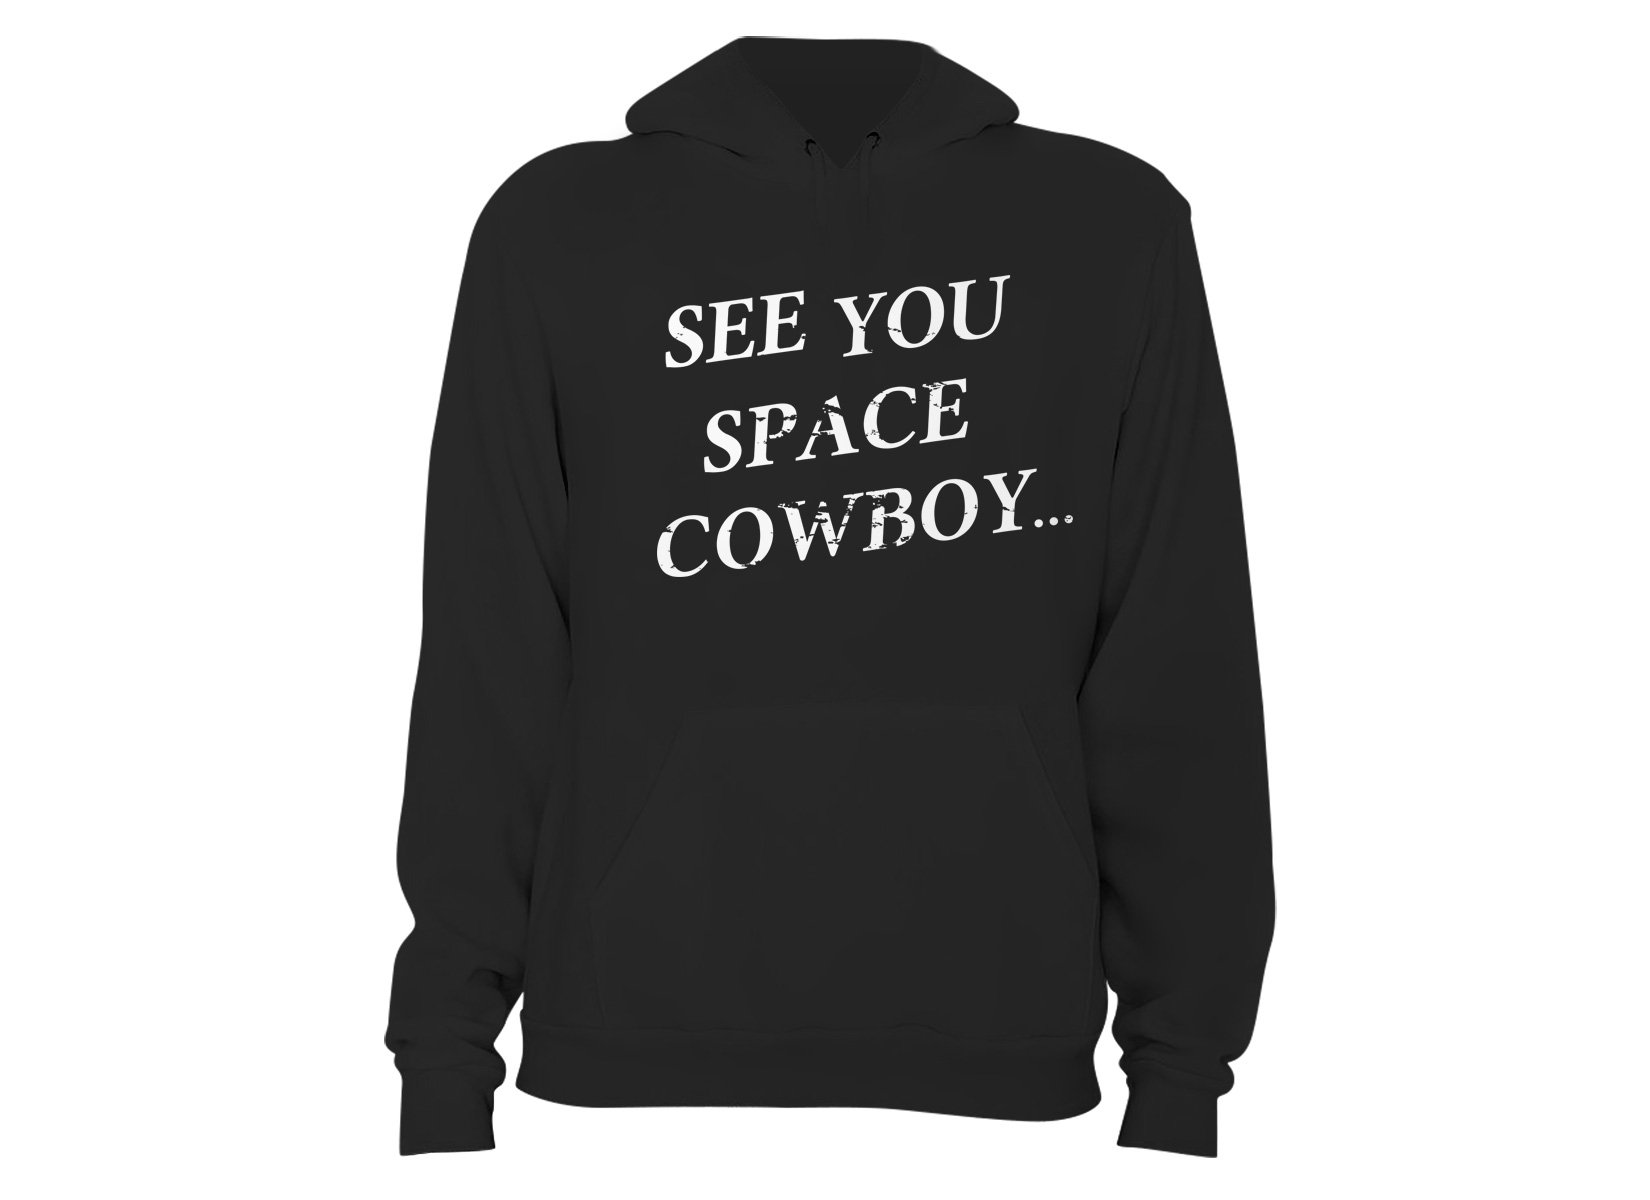 See You Space Cowboy on Hoodie